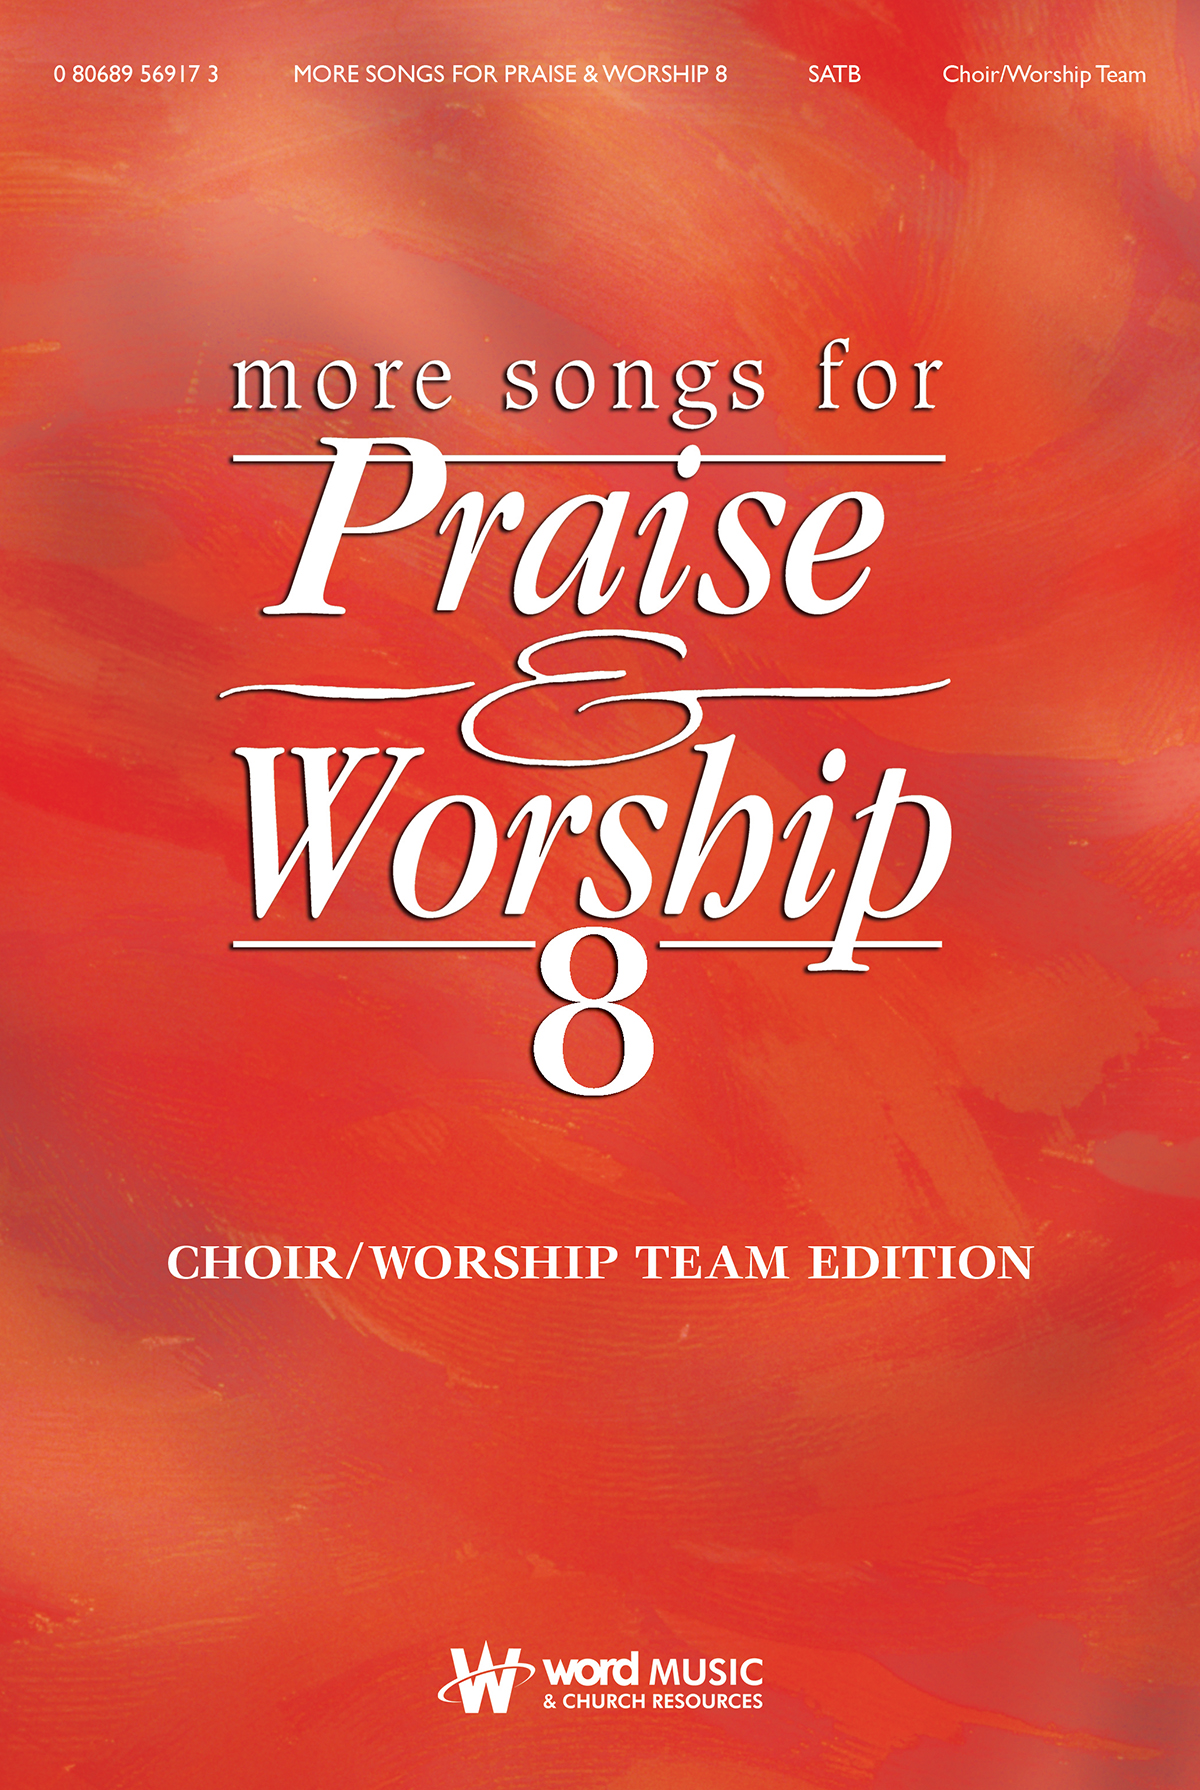 More Songs for Praise & Worship 8.